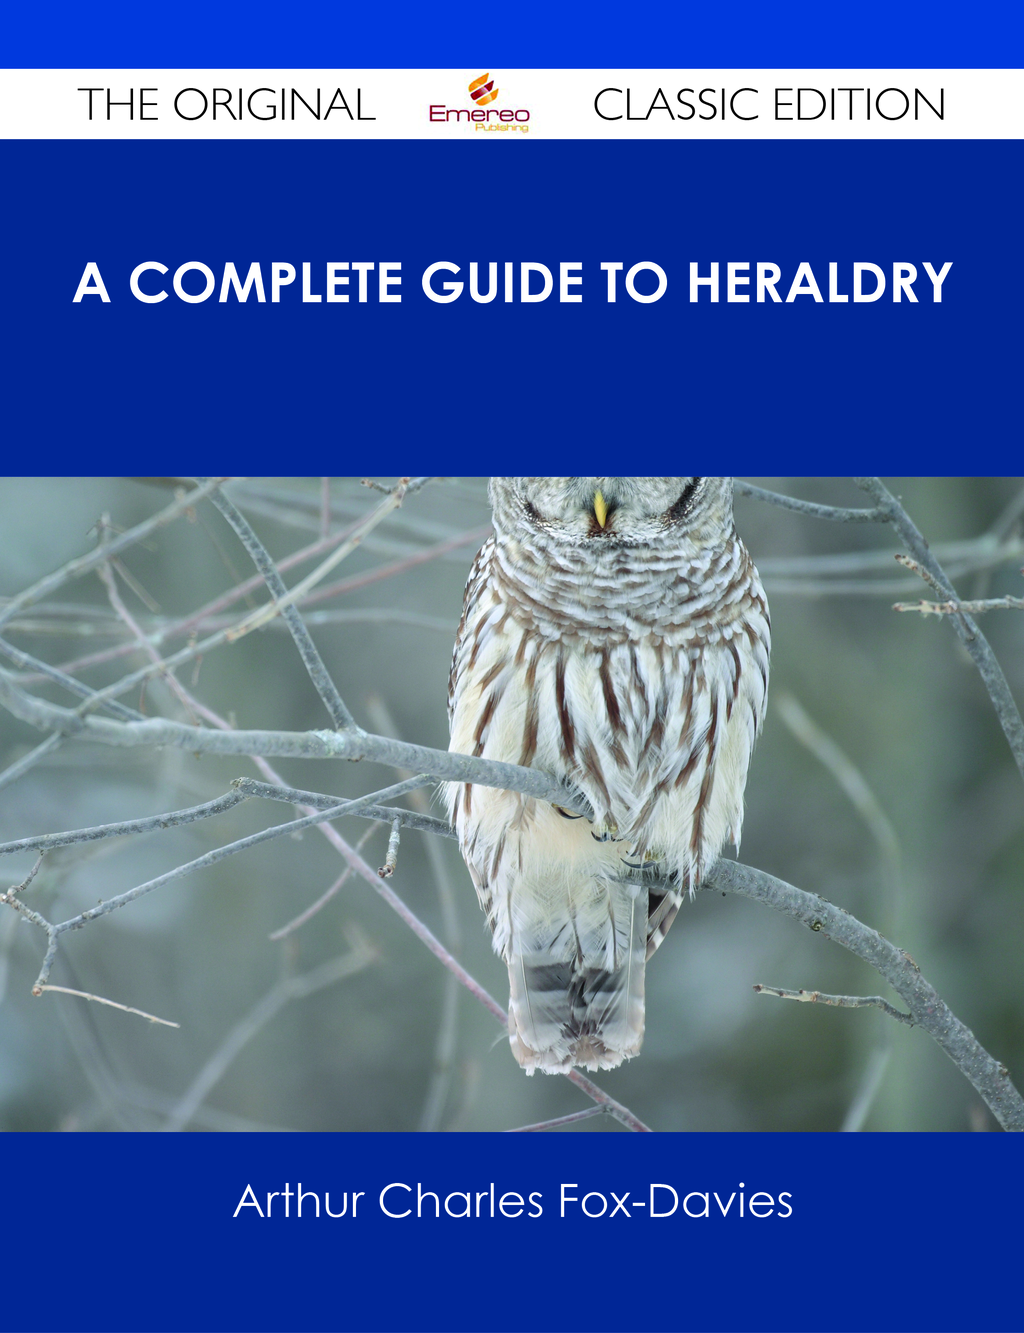 A Complete Guide to Heraldry - The Original Classic Edition